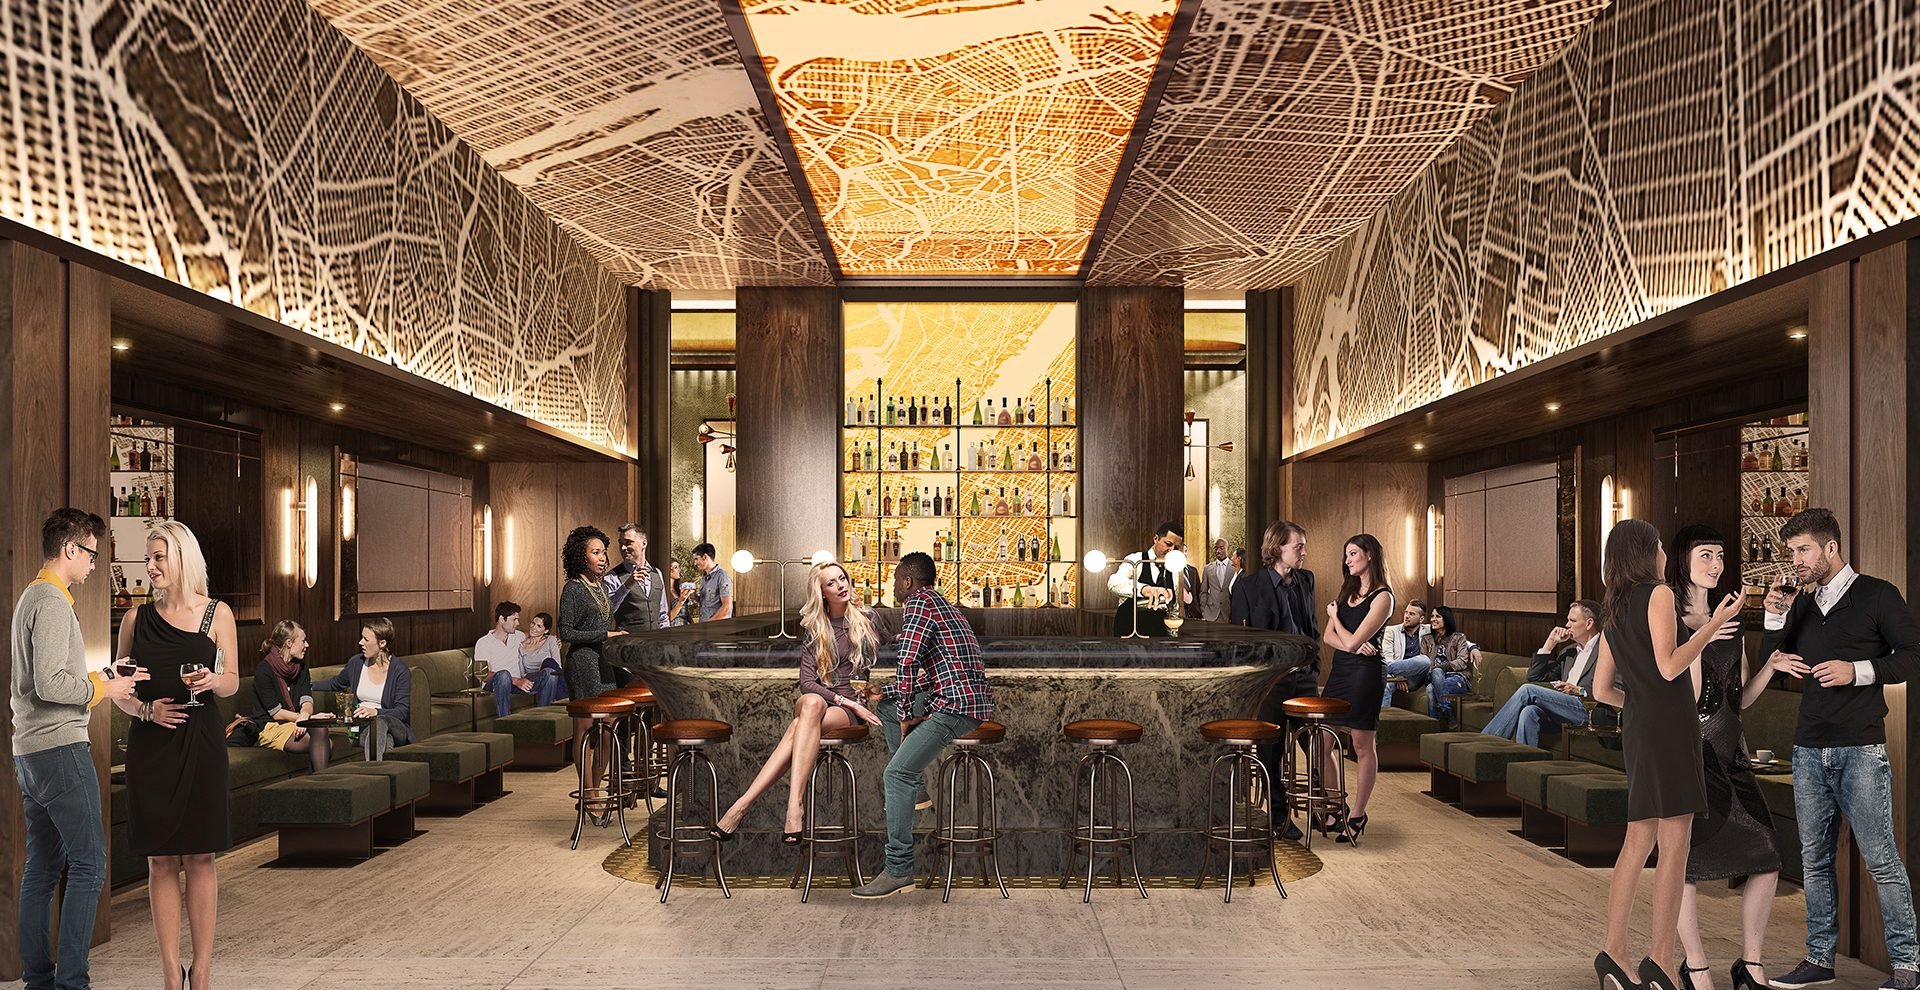 Hotel bar within the new TSX Broadway development